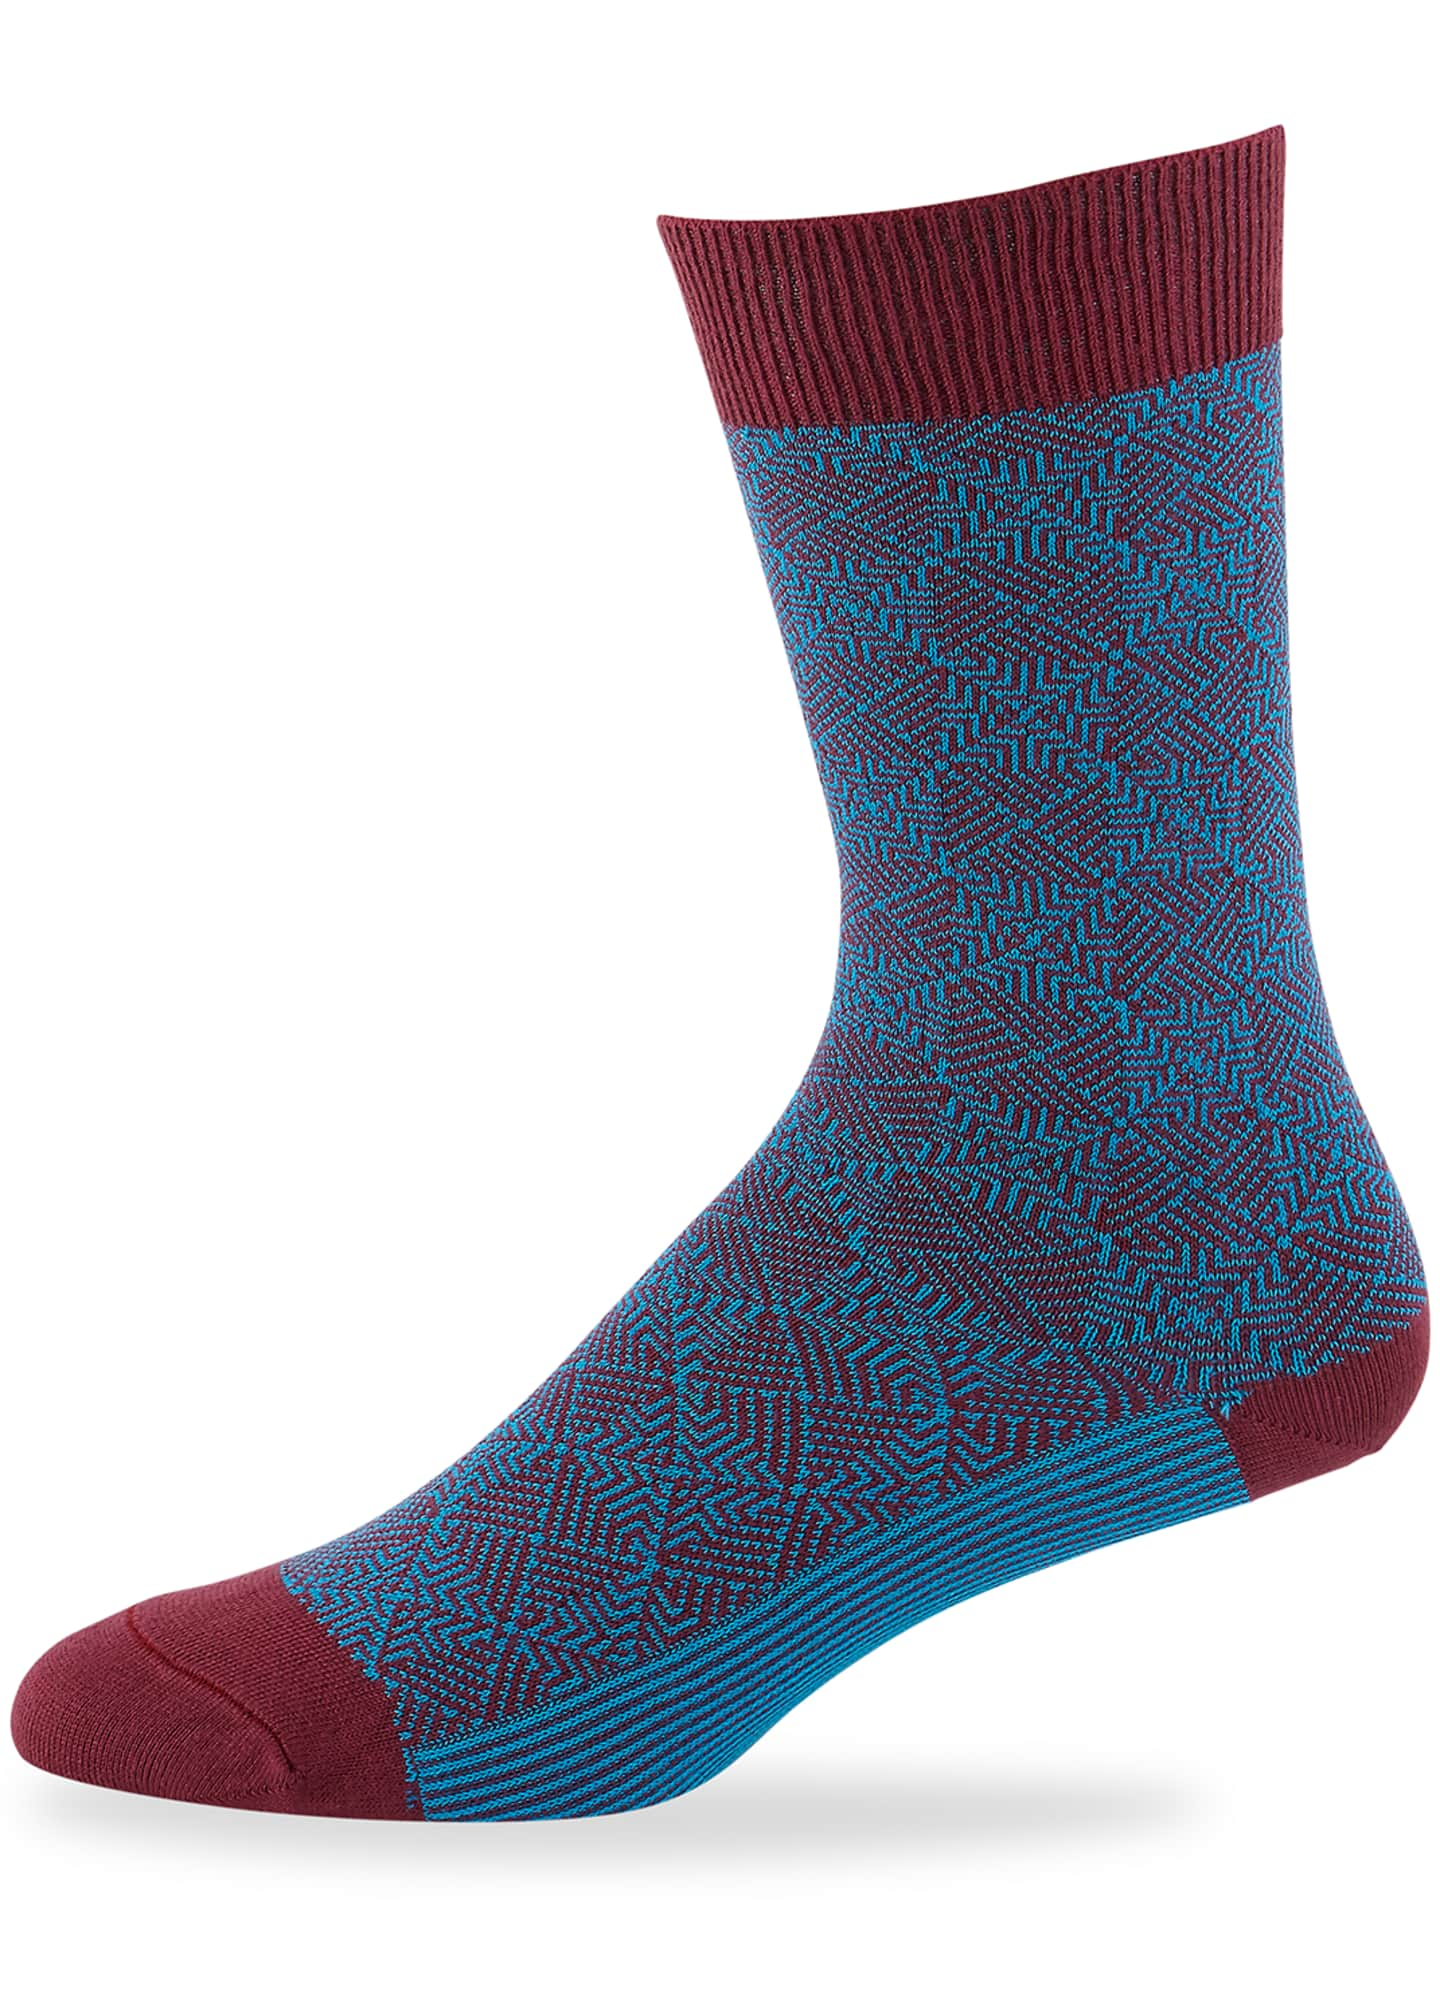 Ace & Everett Men's Hutton Jacquard Knit Socks